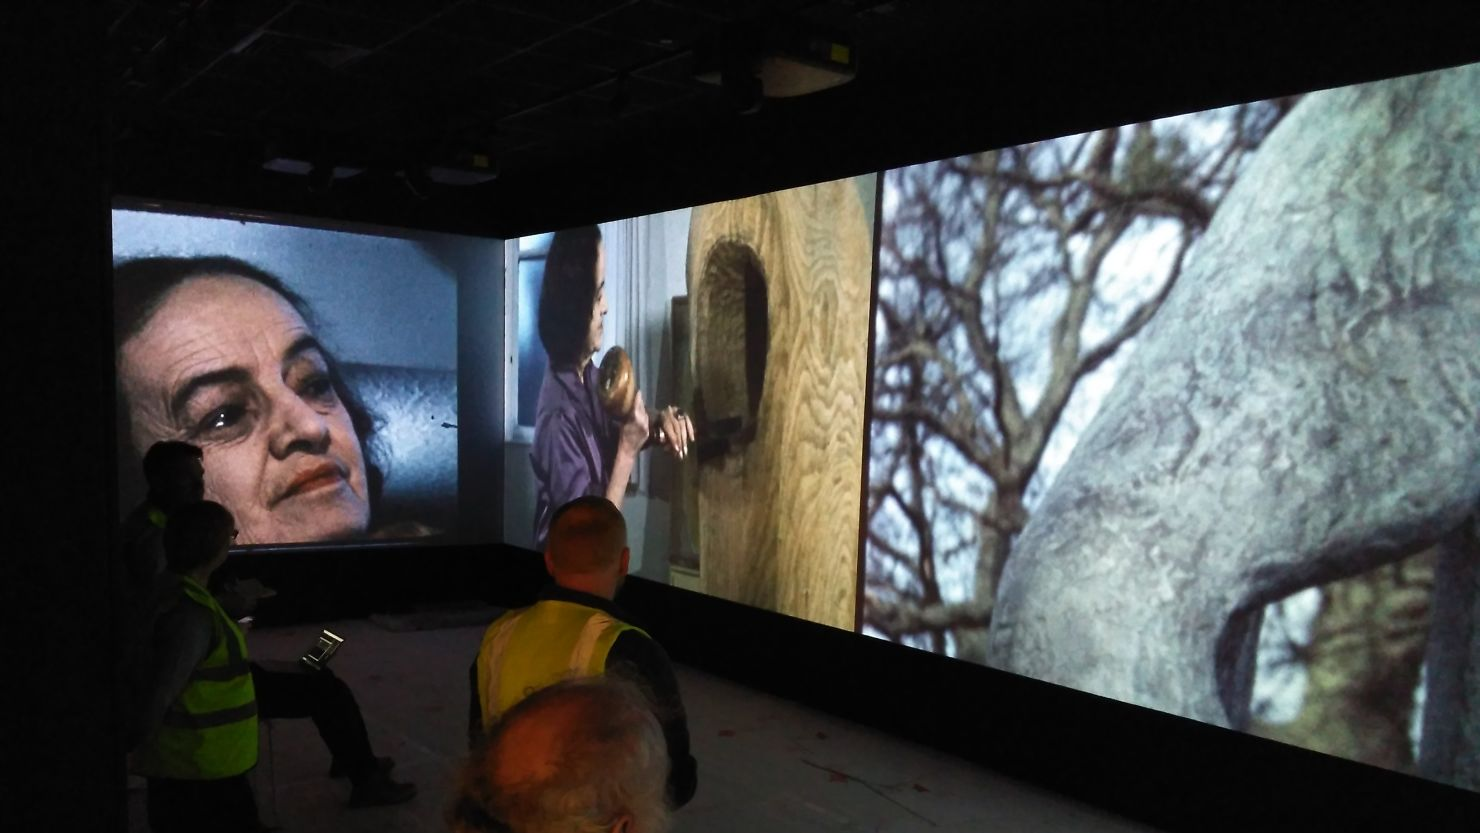 People standing in front of a large screen projection